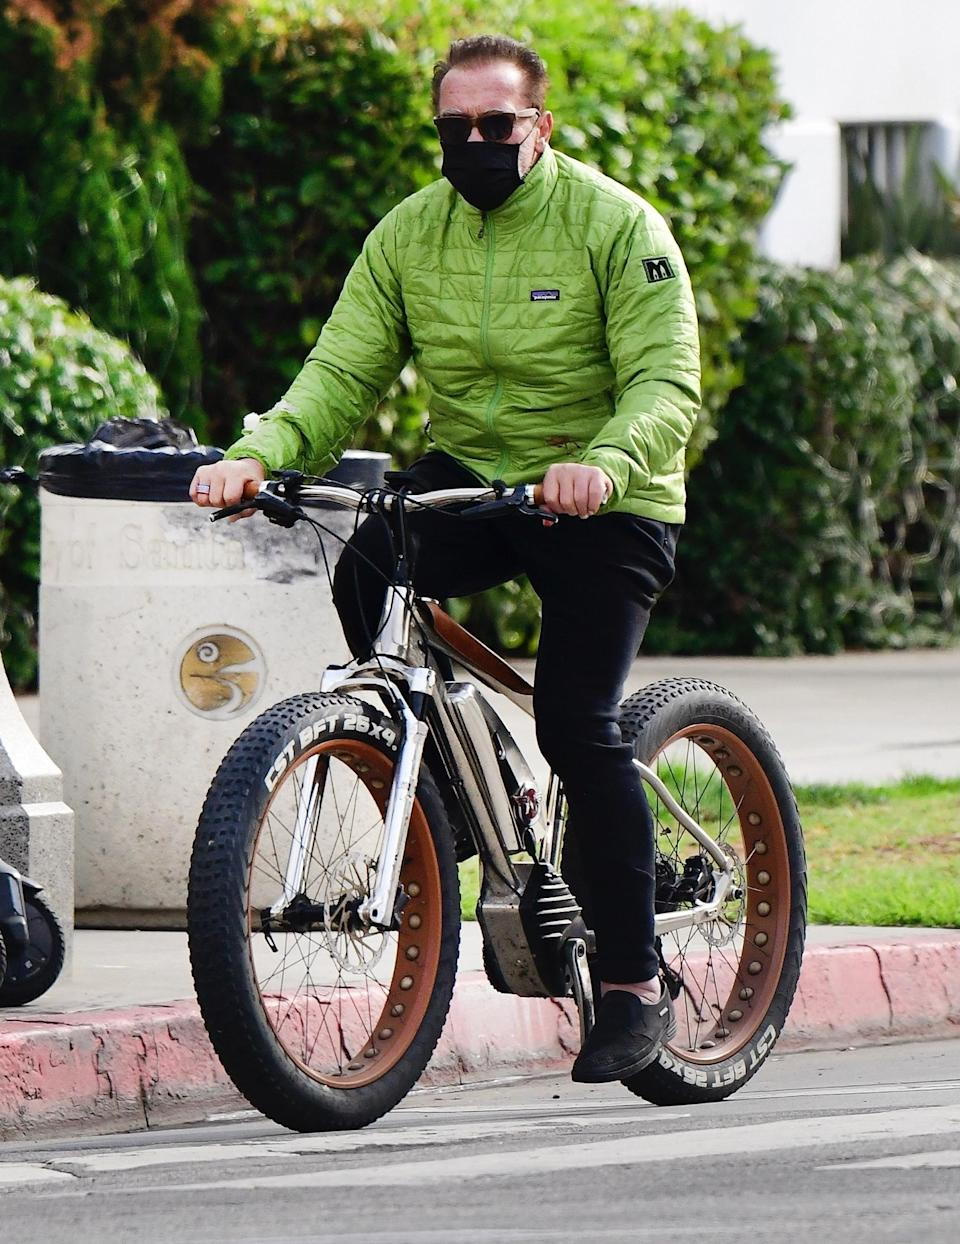 <p>Another day, another bike ride for Arnold Schwarzenegger, who takes a Thursday spin around Santa Monica, California. </p>